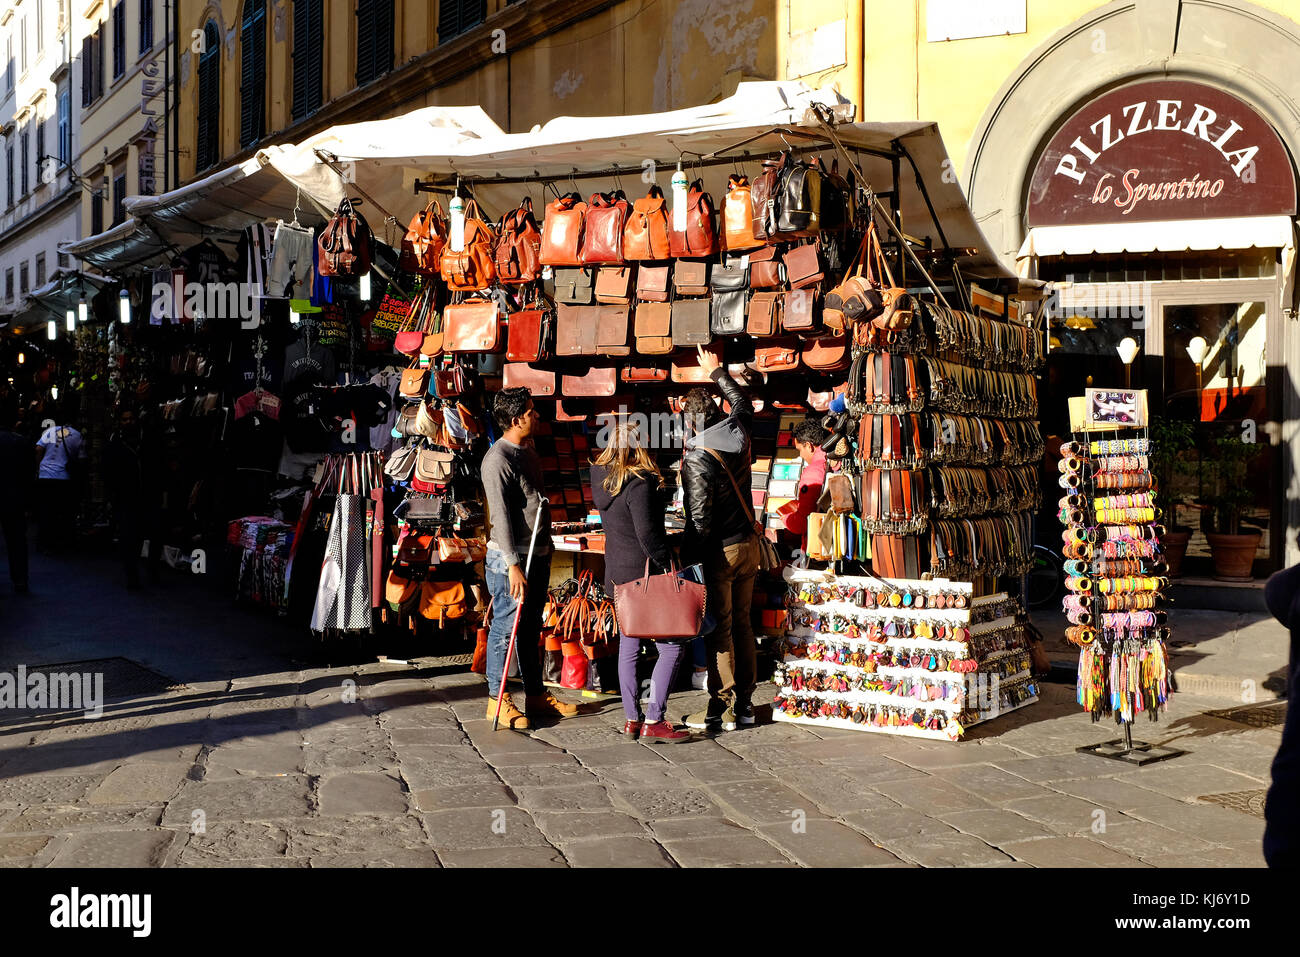 leather goods stall, florence, italy Stock Photo